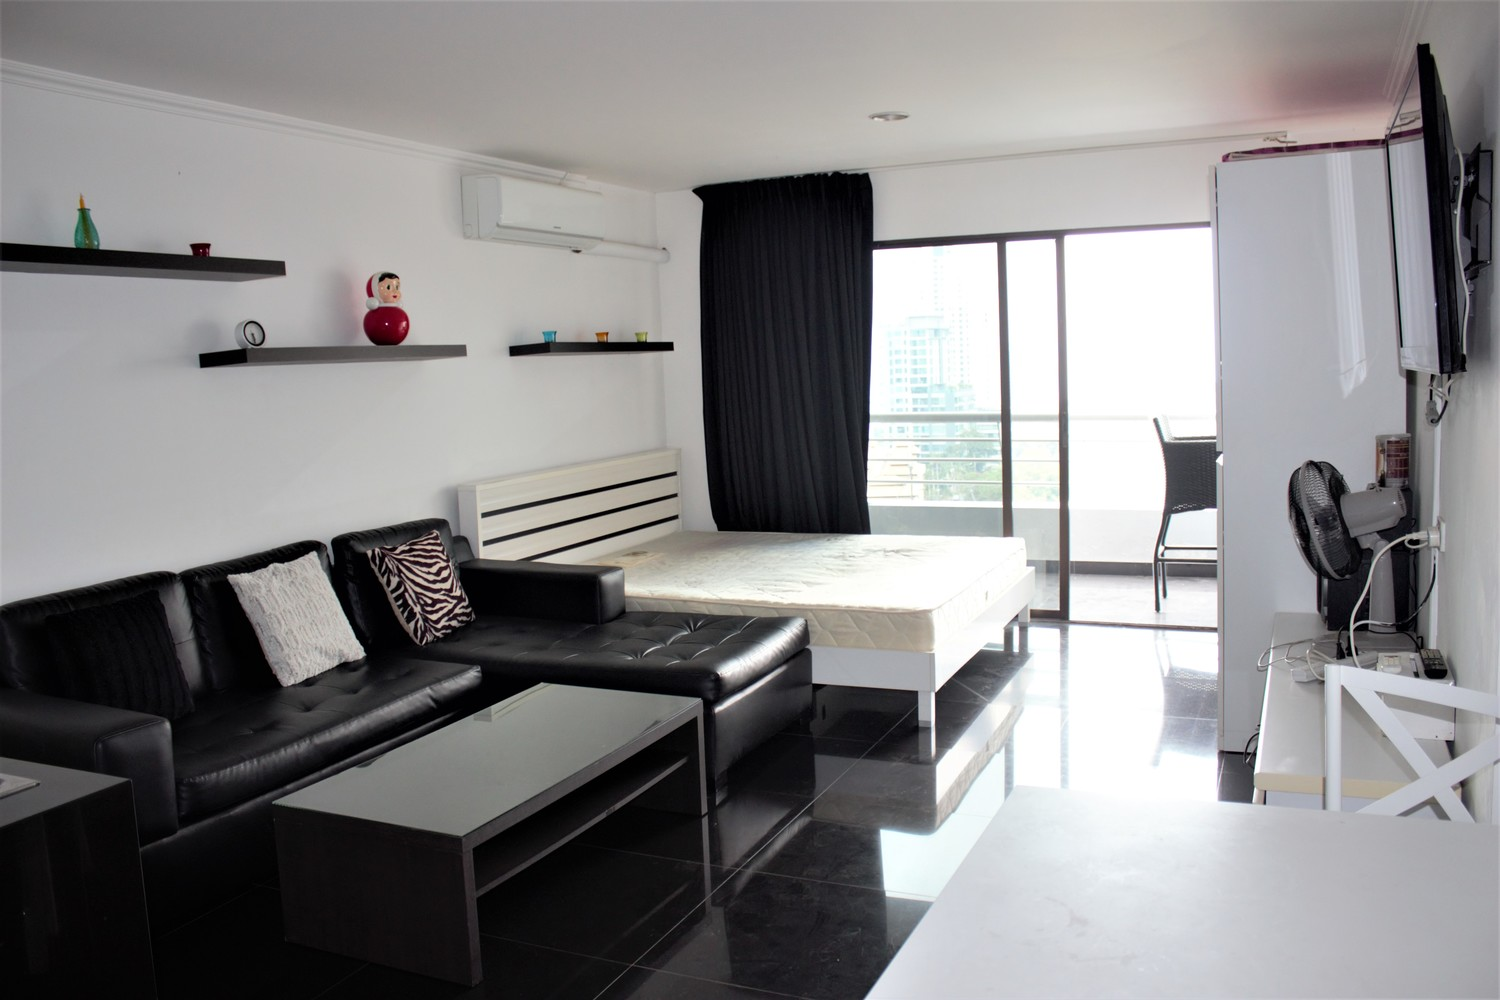 Condo at Pattaya Hill Resort (Pratumnak)